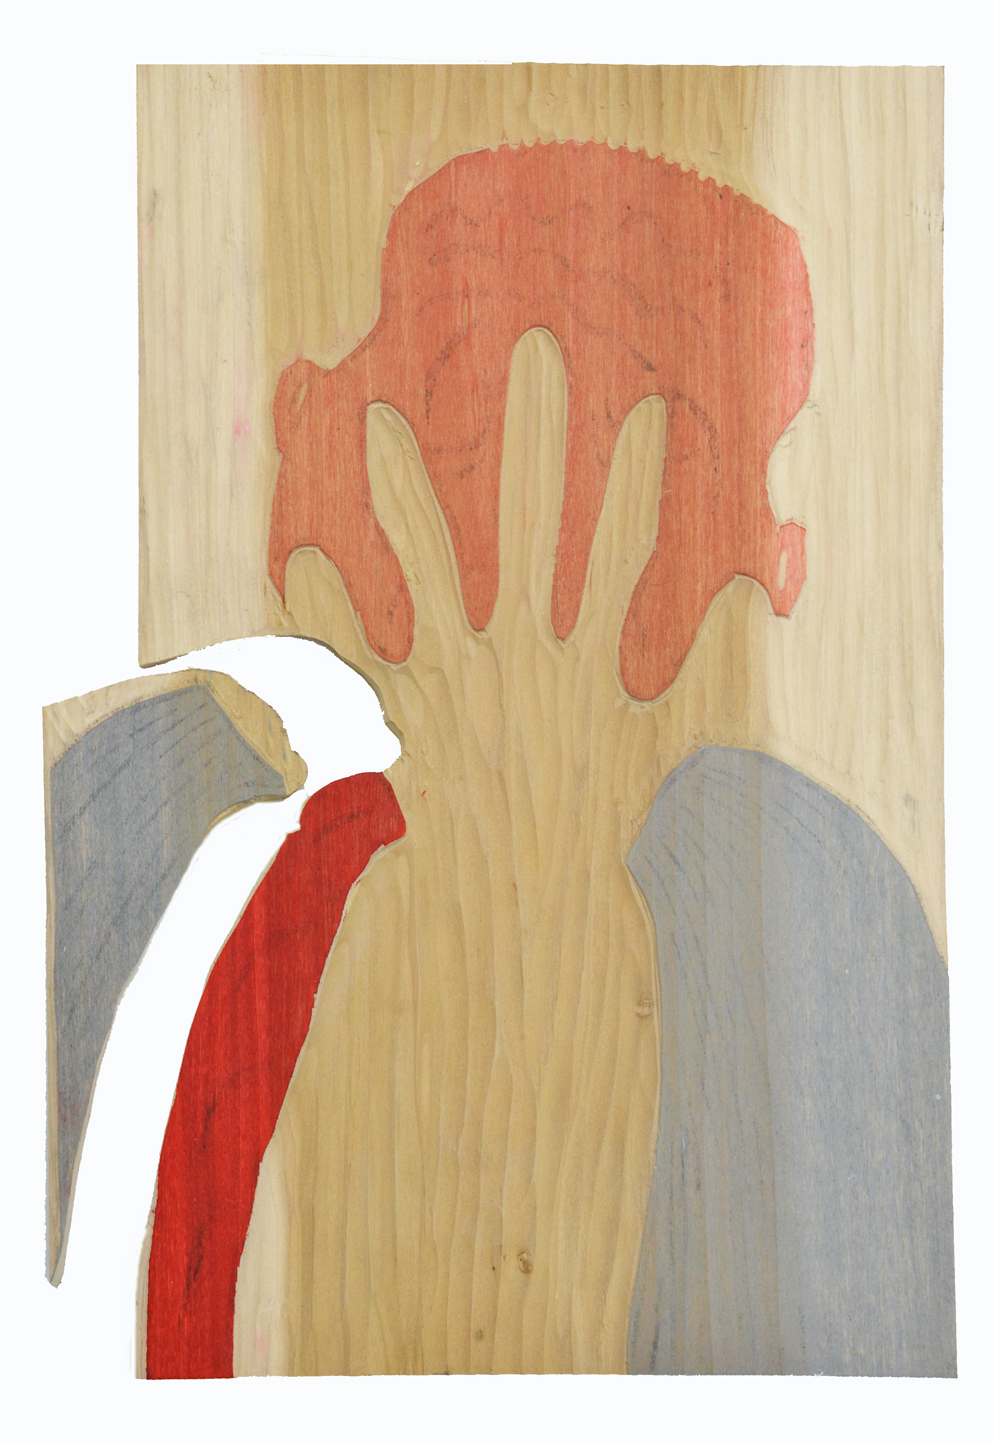 In His Face - Color Block - Poplar wood - April 2016 - ( Notice that the grey piece had to be cut away so it could be inked properly)